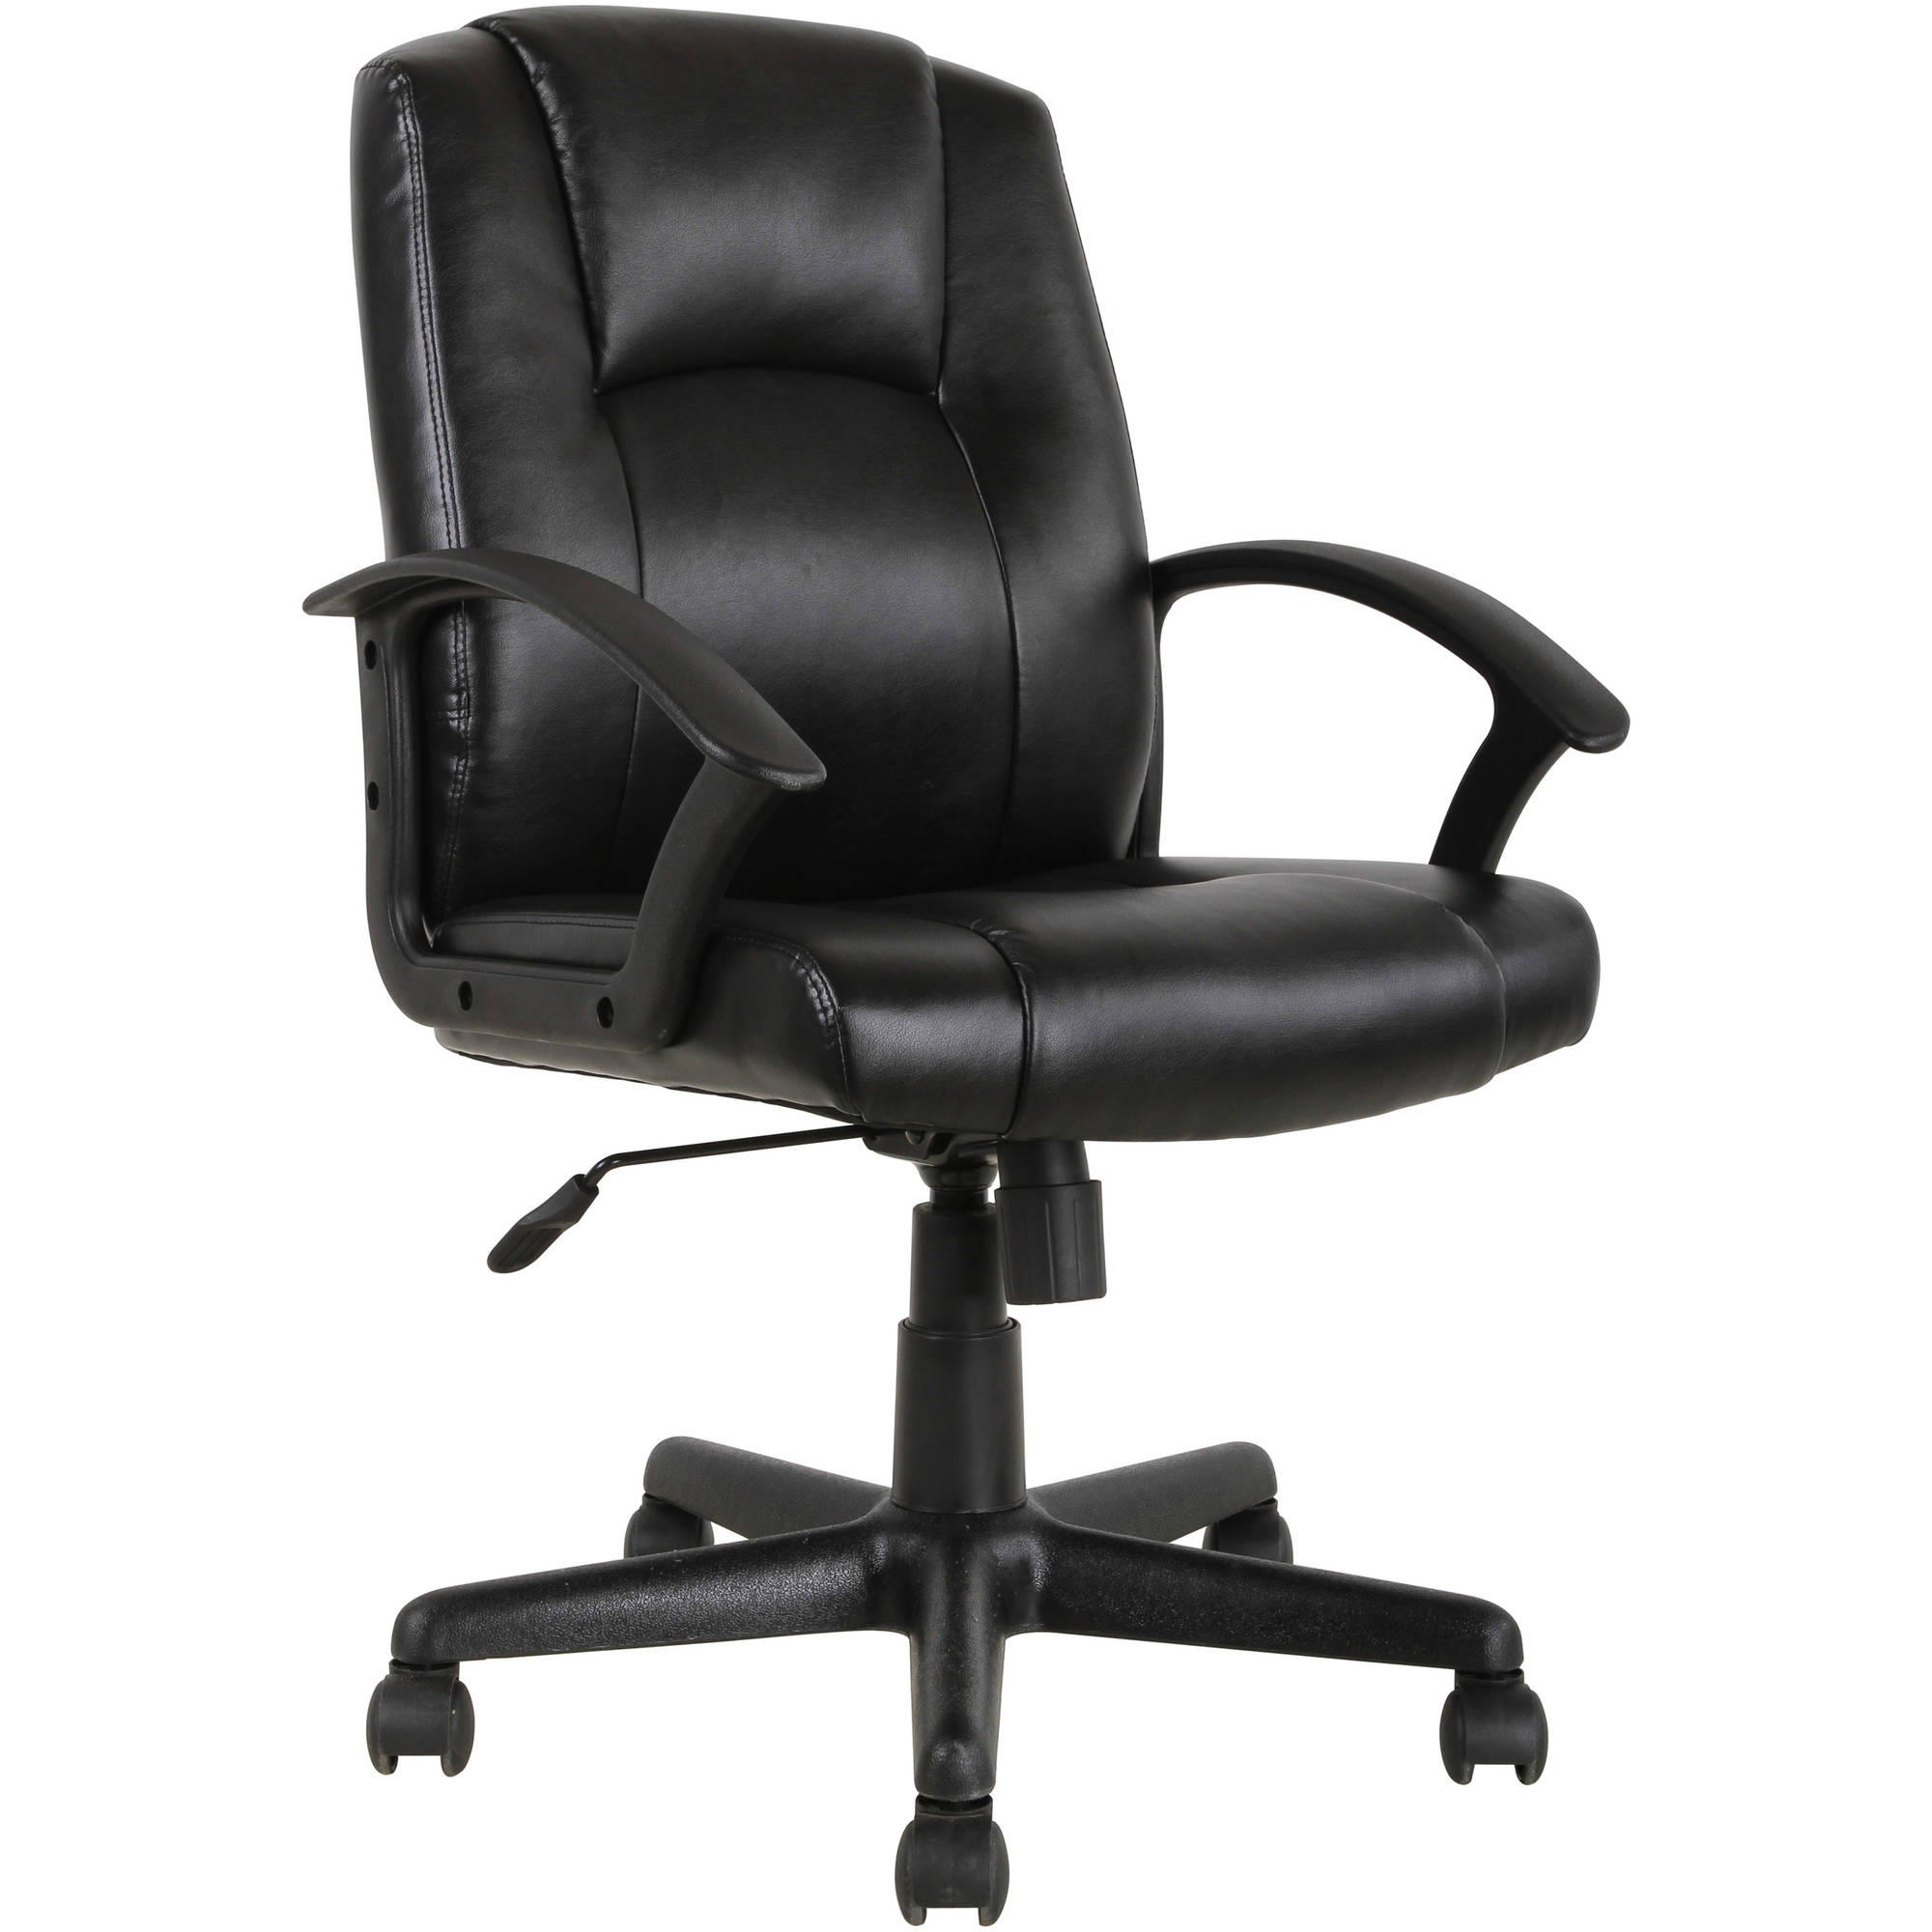 chair walmart. mainstays mid-back leather office chair, black chair walmart